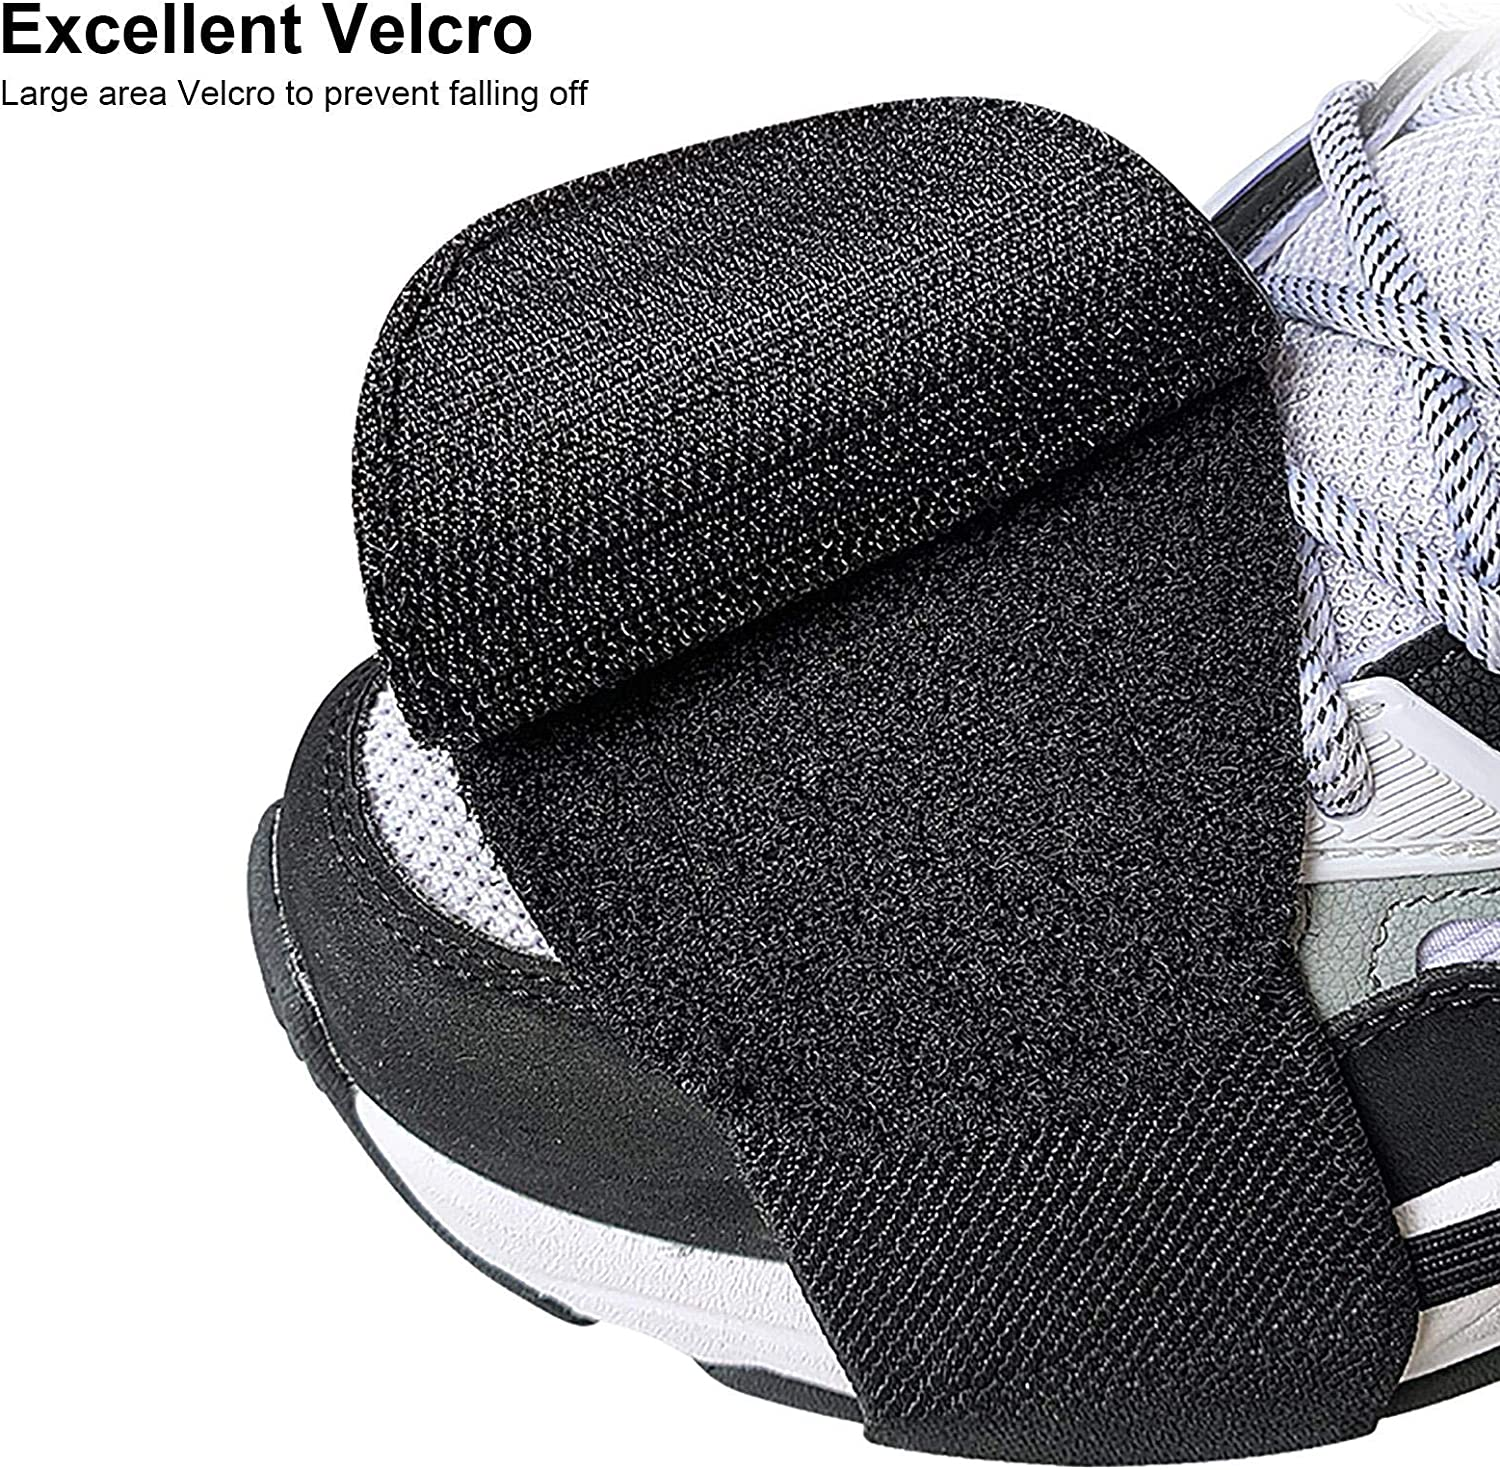 Motorcycle Gear Cover Gearshift Shoe Cover Gearshift Protective Cover Shoe Rubber Gearshift Foot Cover Riding Shoe Cover Durable Non-Slip Protective Gear